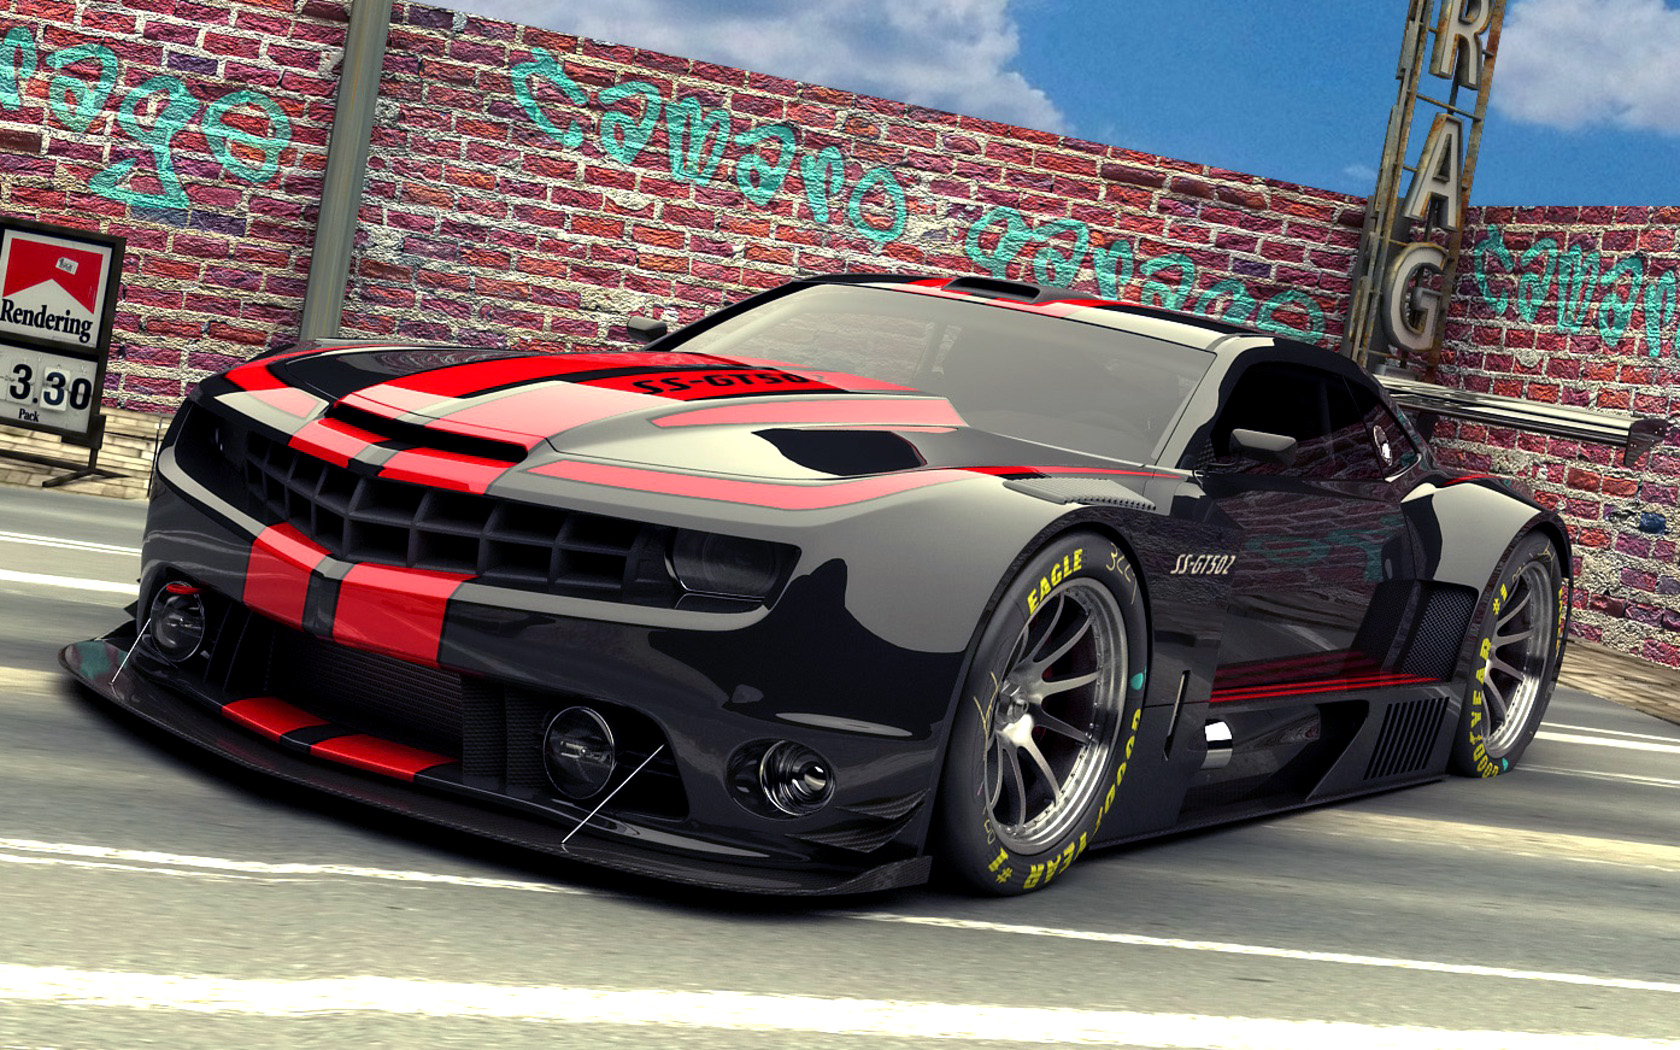 Camaro Wallpaper Transformers hd wallpaper background desktop 1680x1050